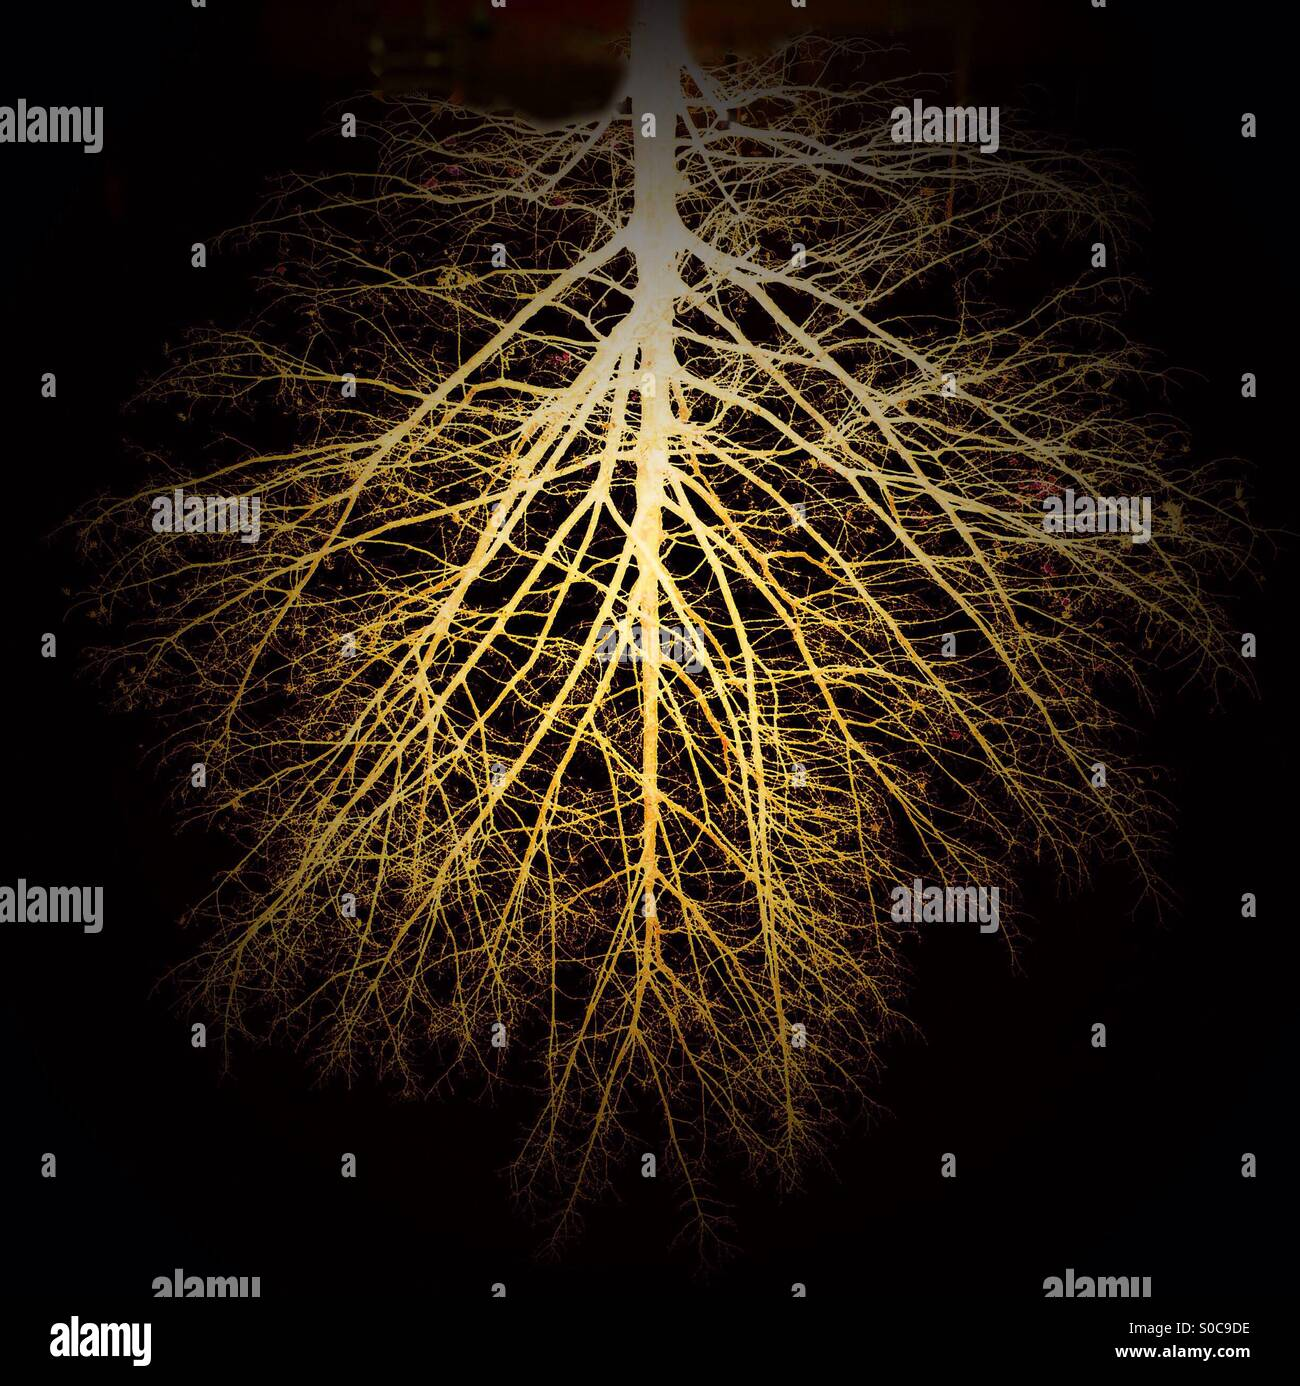 Tree, upside down, or is it roots? - Stock Image